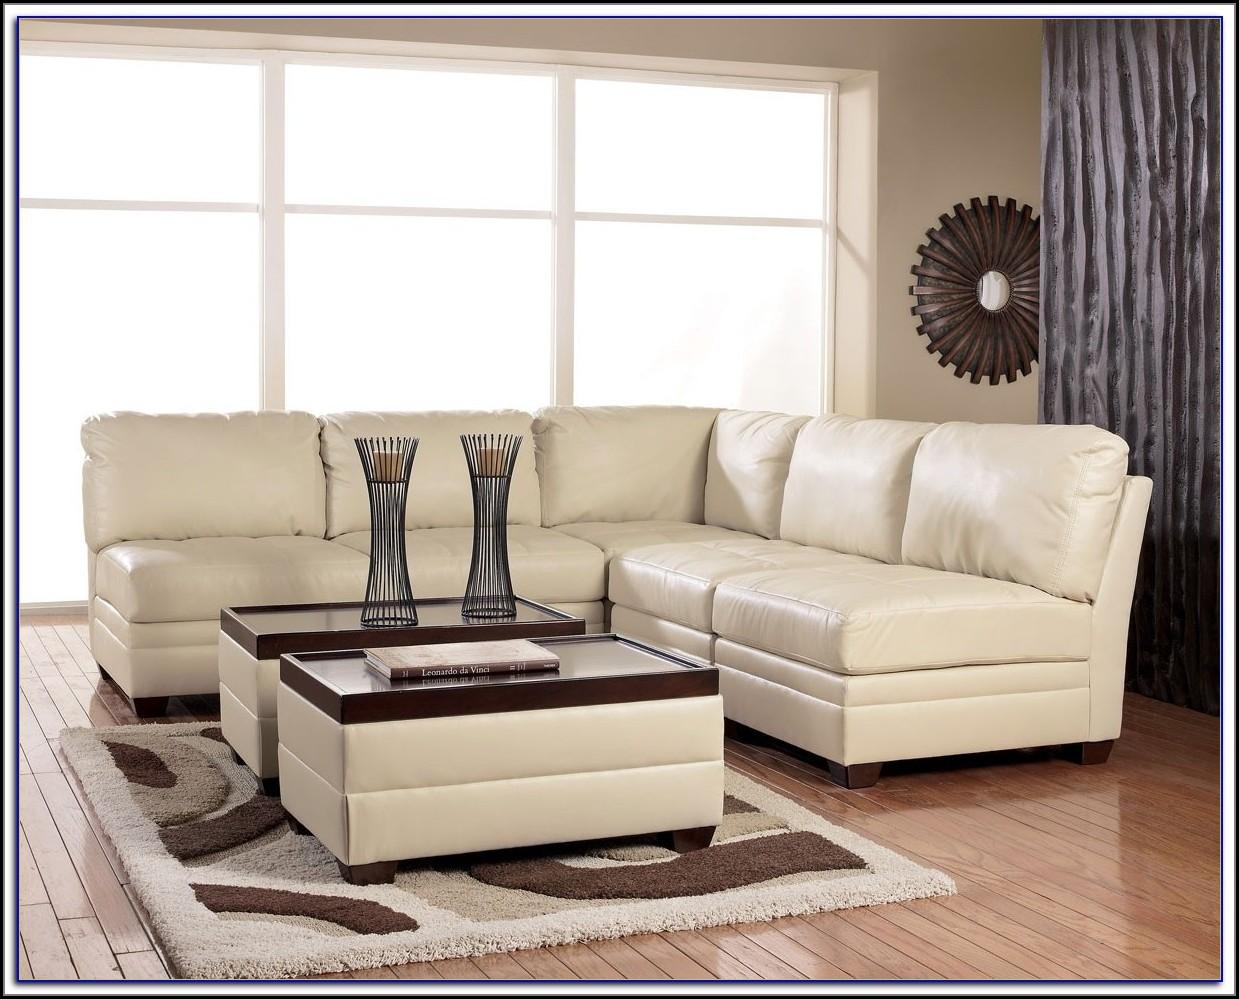 Decorating: Fill Your Living Room With Elegant Ashley Furniture With Regard To Ashley Furniture Grenada Sectional (View 15 of 15)